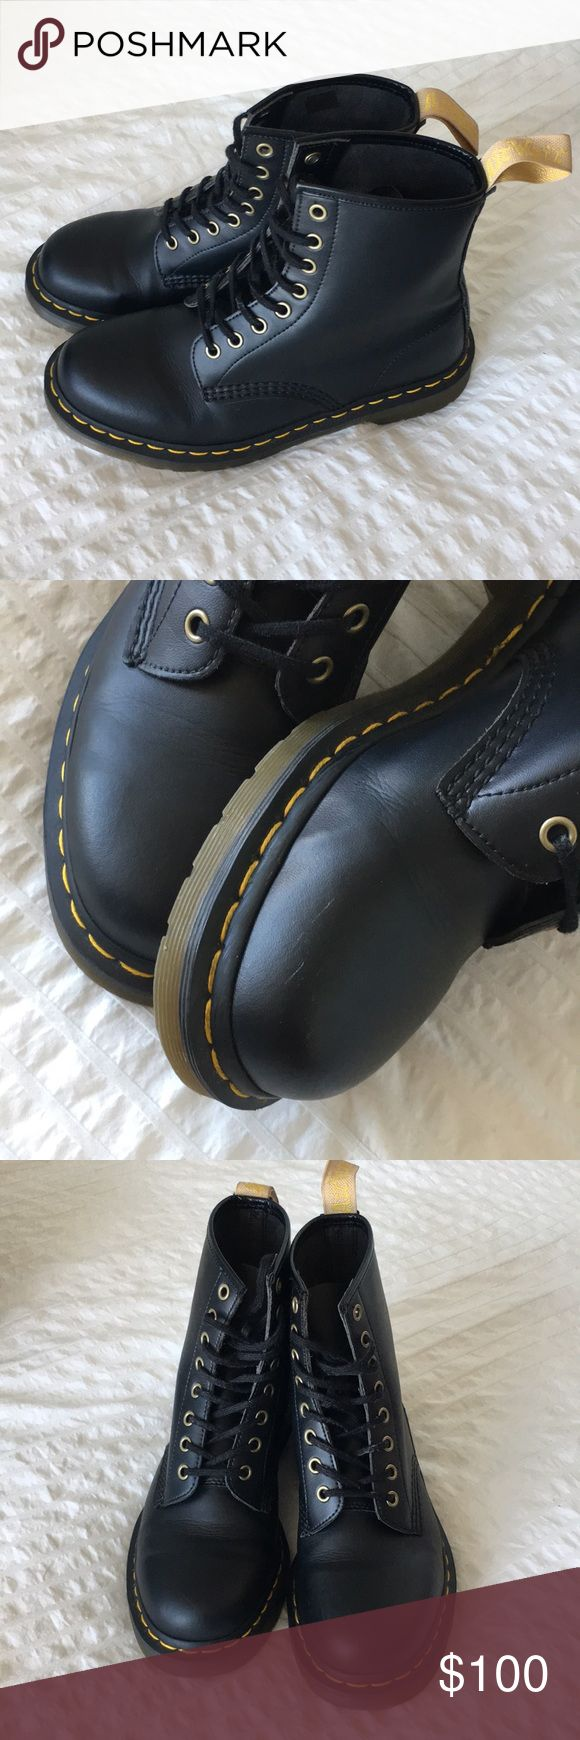 Vegan 1460 Doc Martens Women's size 9. Vegan faux leather. In great condition other than a small scuff on side of left toe if you look closely. Dr. Martens Shoes Combat & Moto Boots